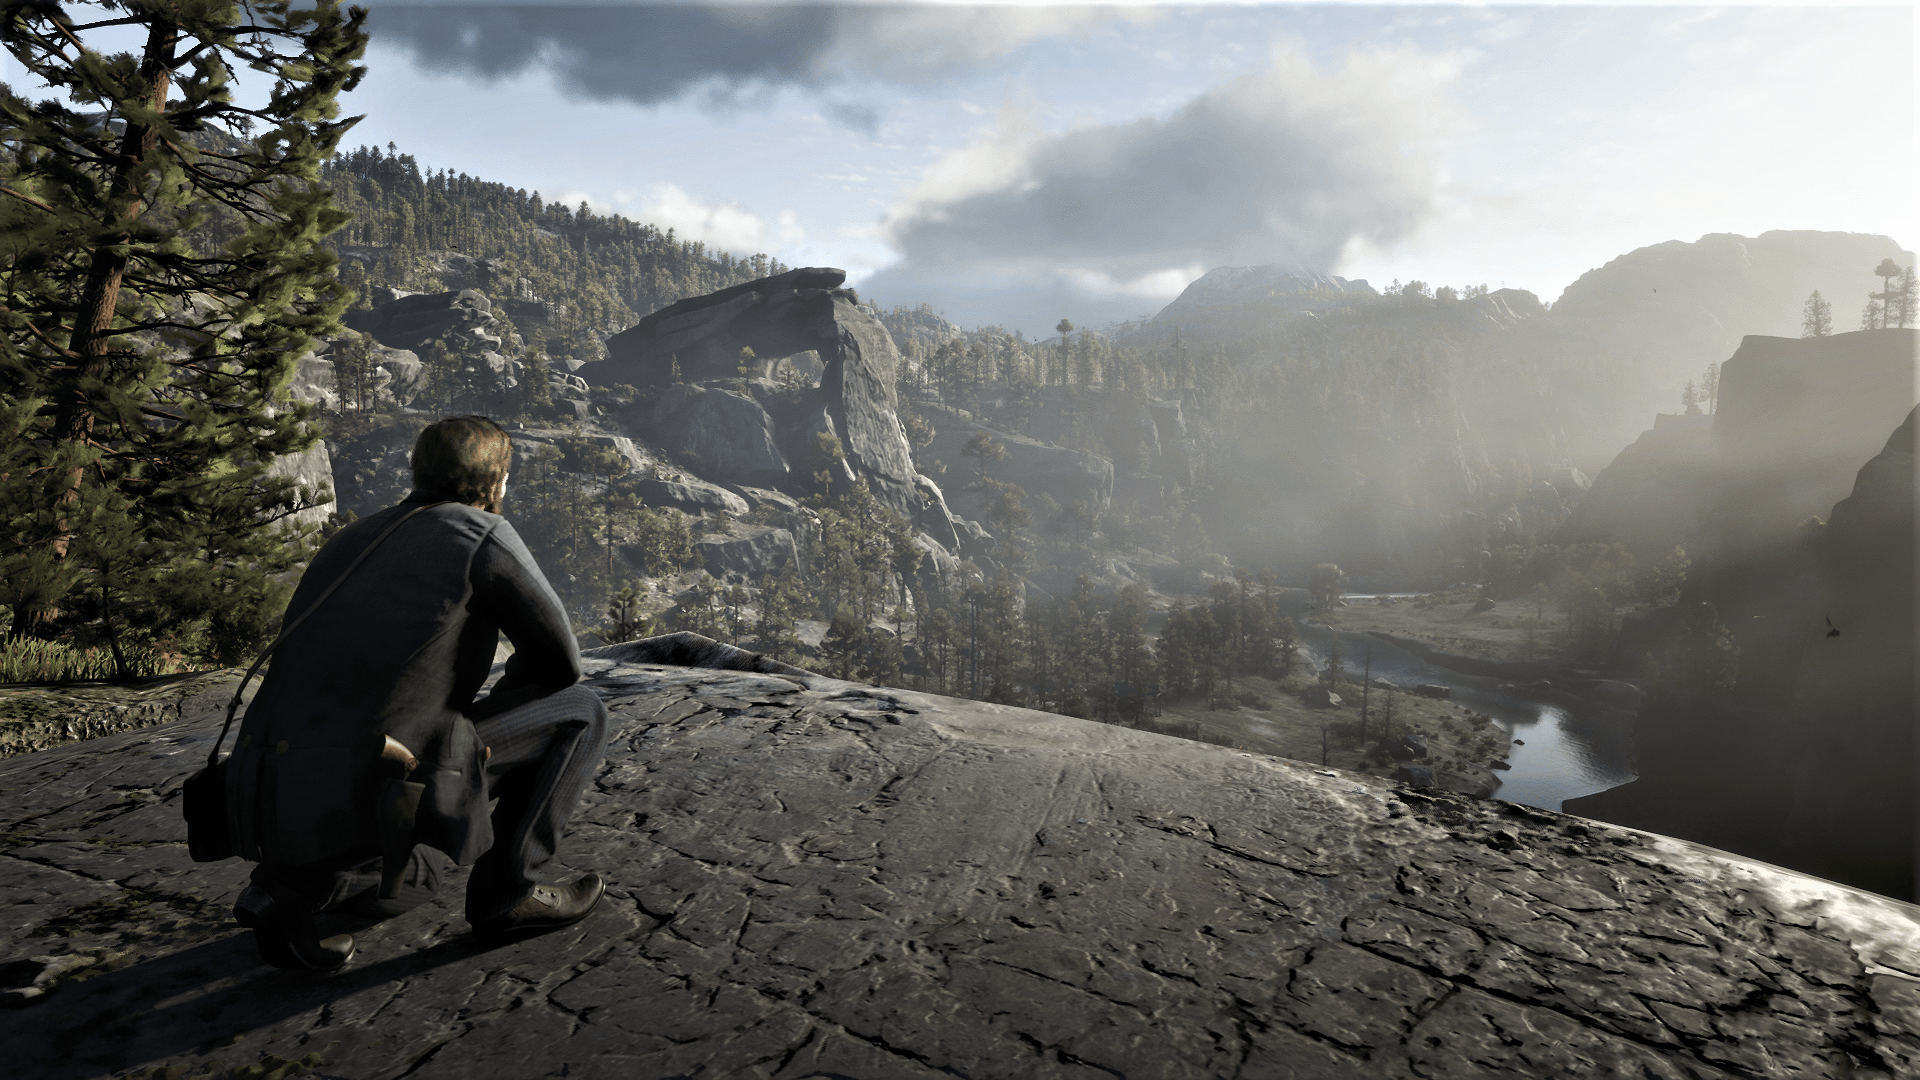 Trucchi E Codici Red Dead Redemption 2 Per Ps4, Xbox E Pc 1 - Hynerd.it